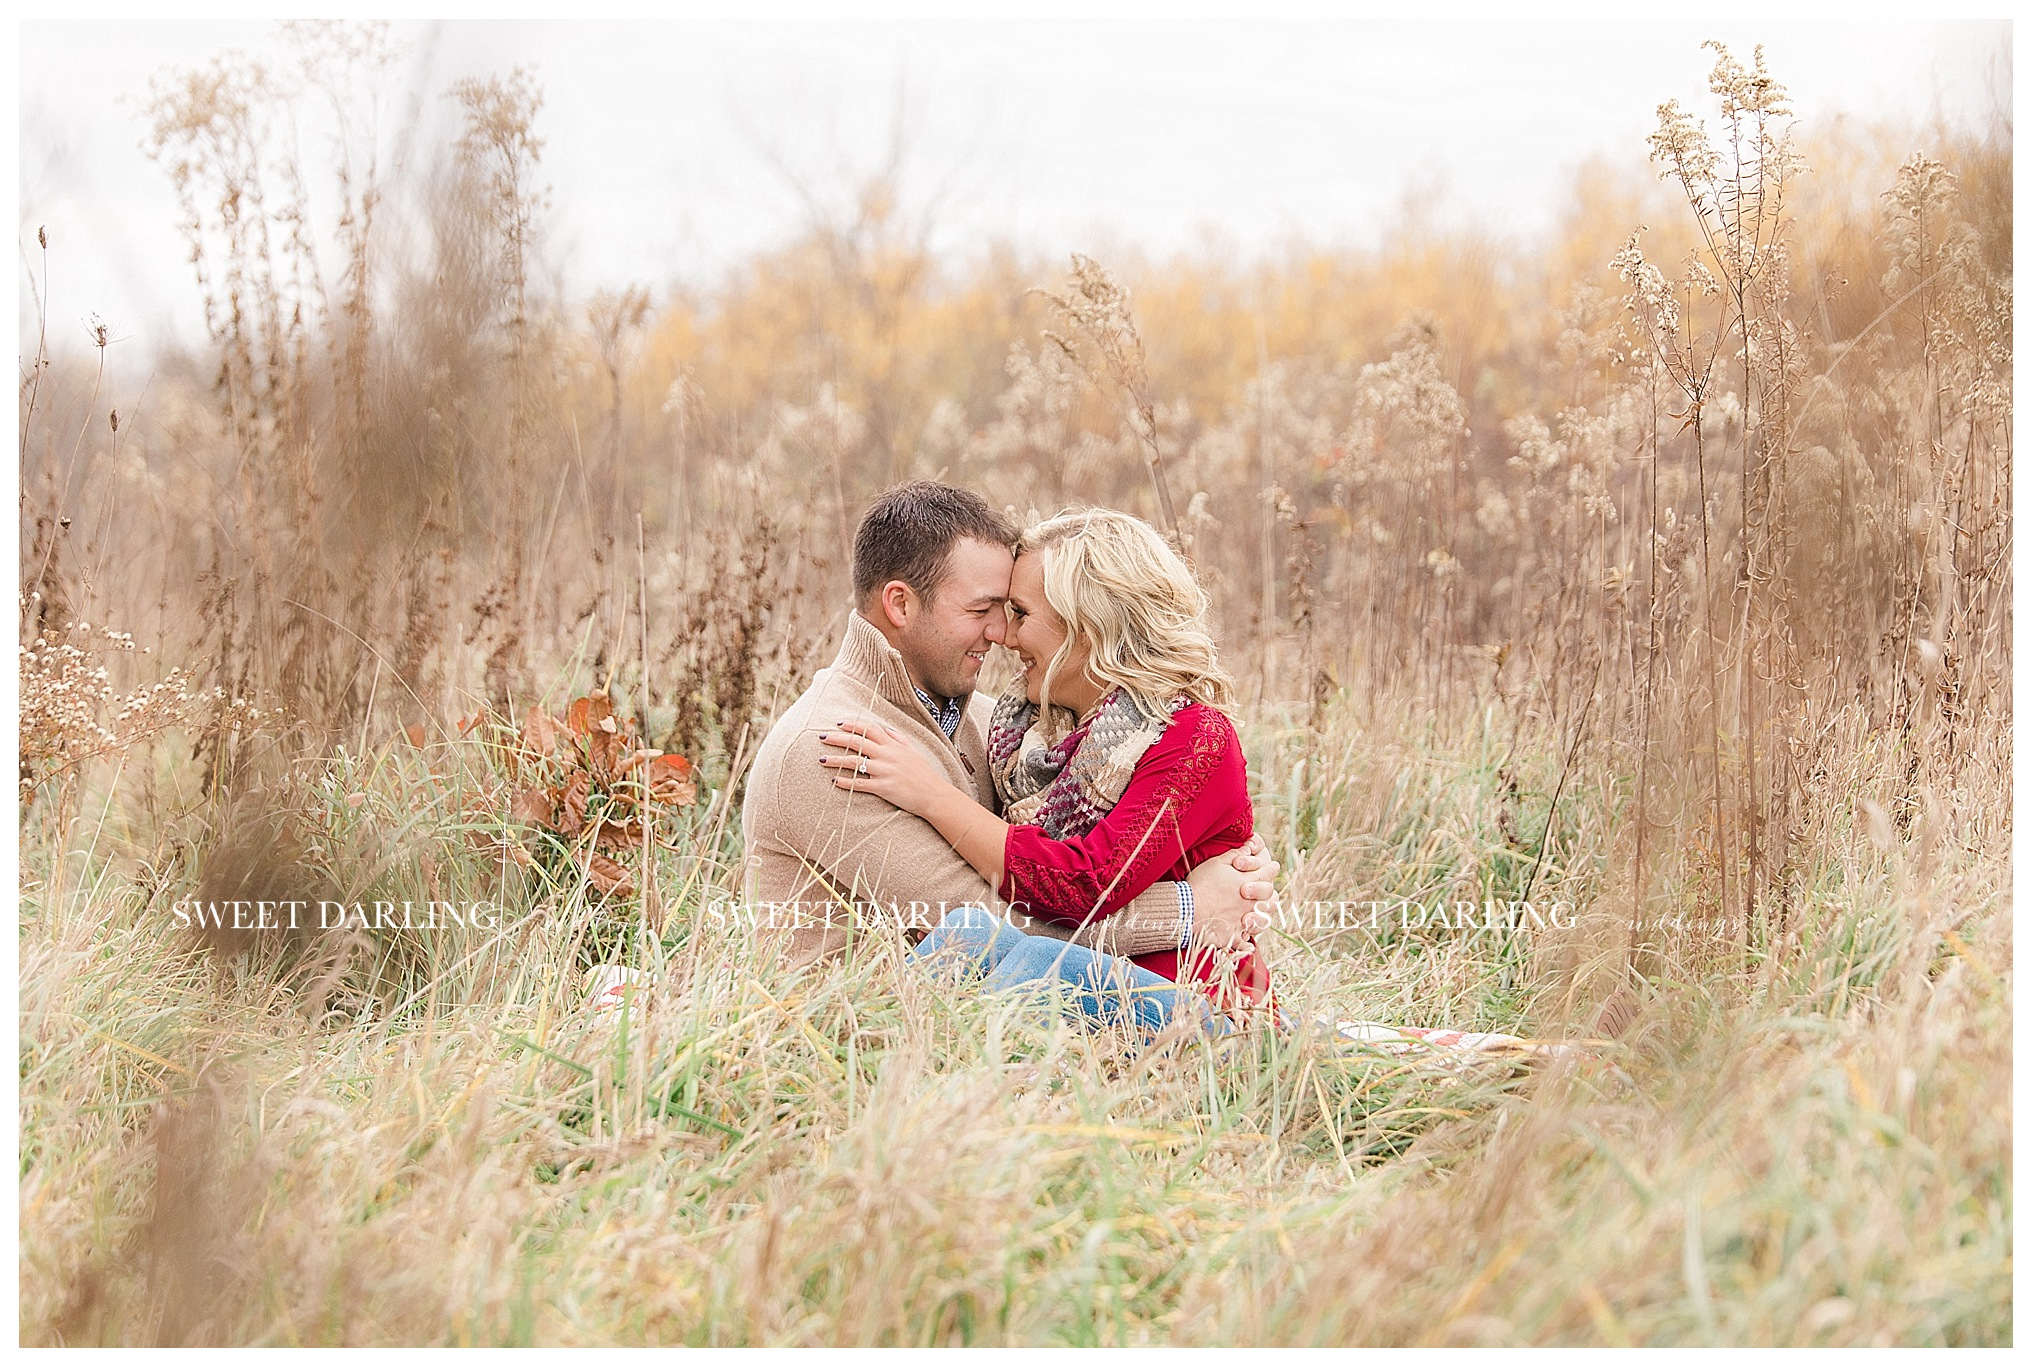 paxton-illinois-sweet-darling-weddings-photography-fall-engagement-session-ring-state-park_1017.jpg